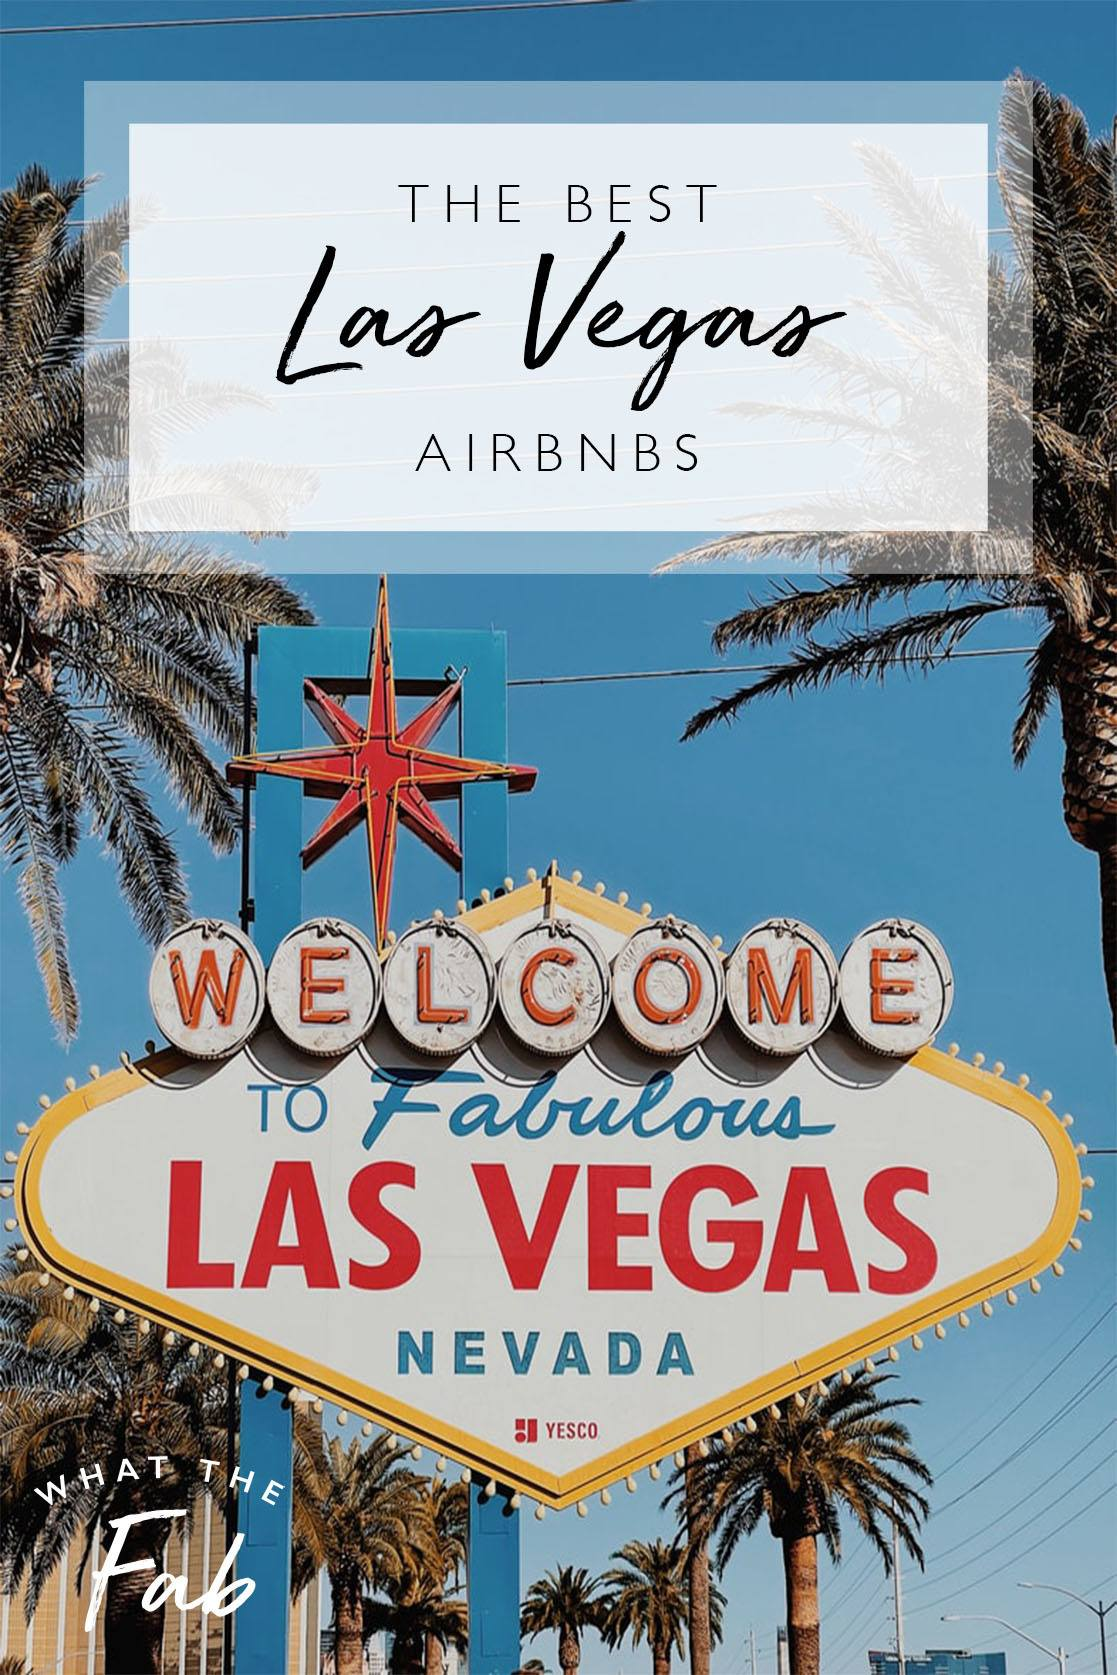 Best Airbnbs in Las Vegas, by Travel Blogger What The Fab